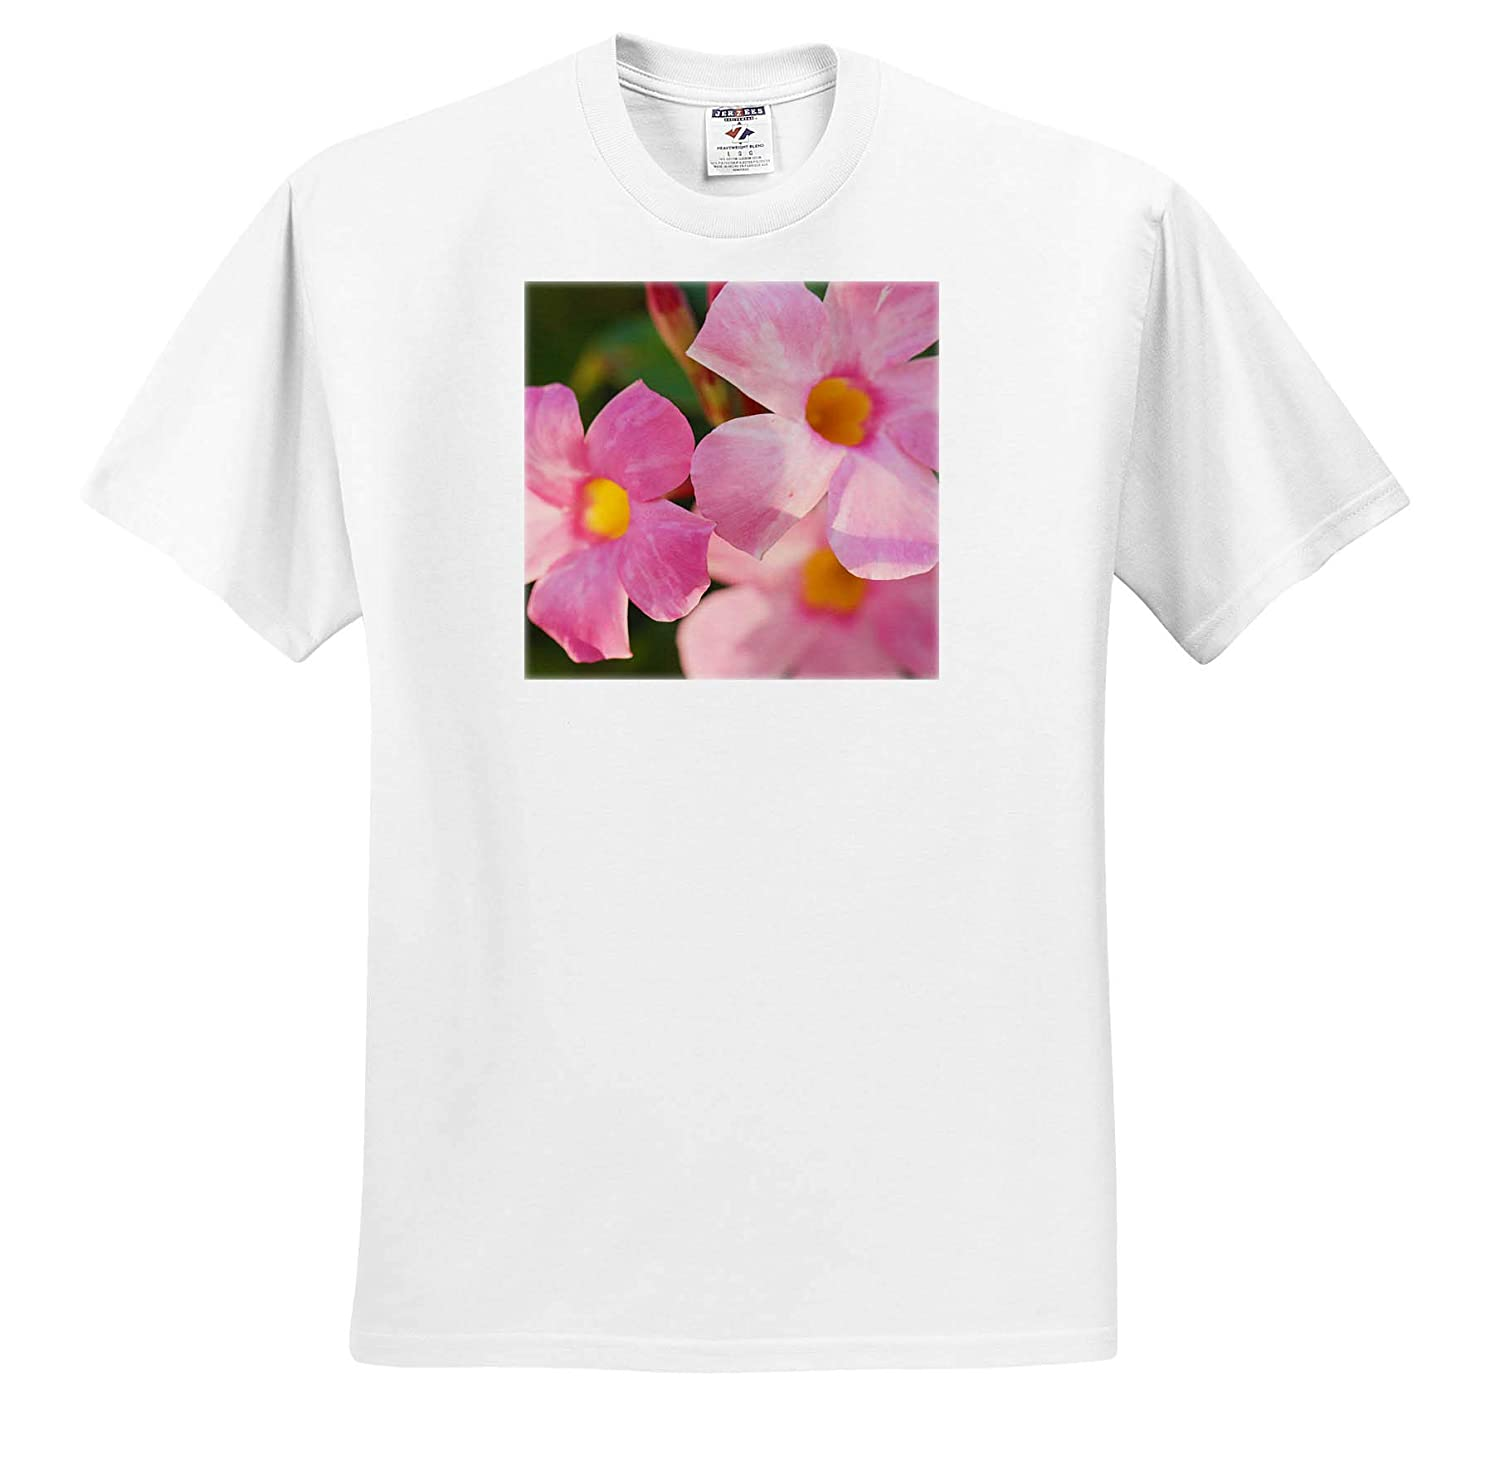 Flowers 3dRose Stamp City - Adult T-Shirt XL Macro Photograph of a Cluster of Pink Mandevilla Flowers ts/_312236